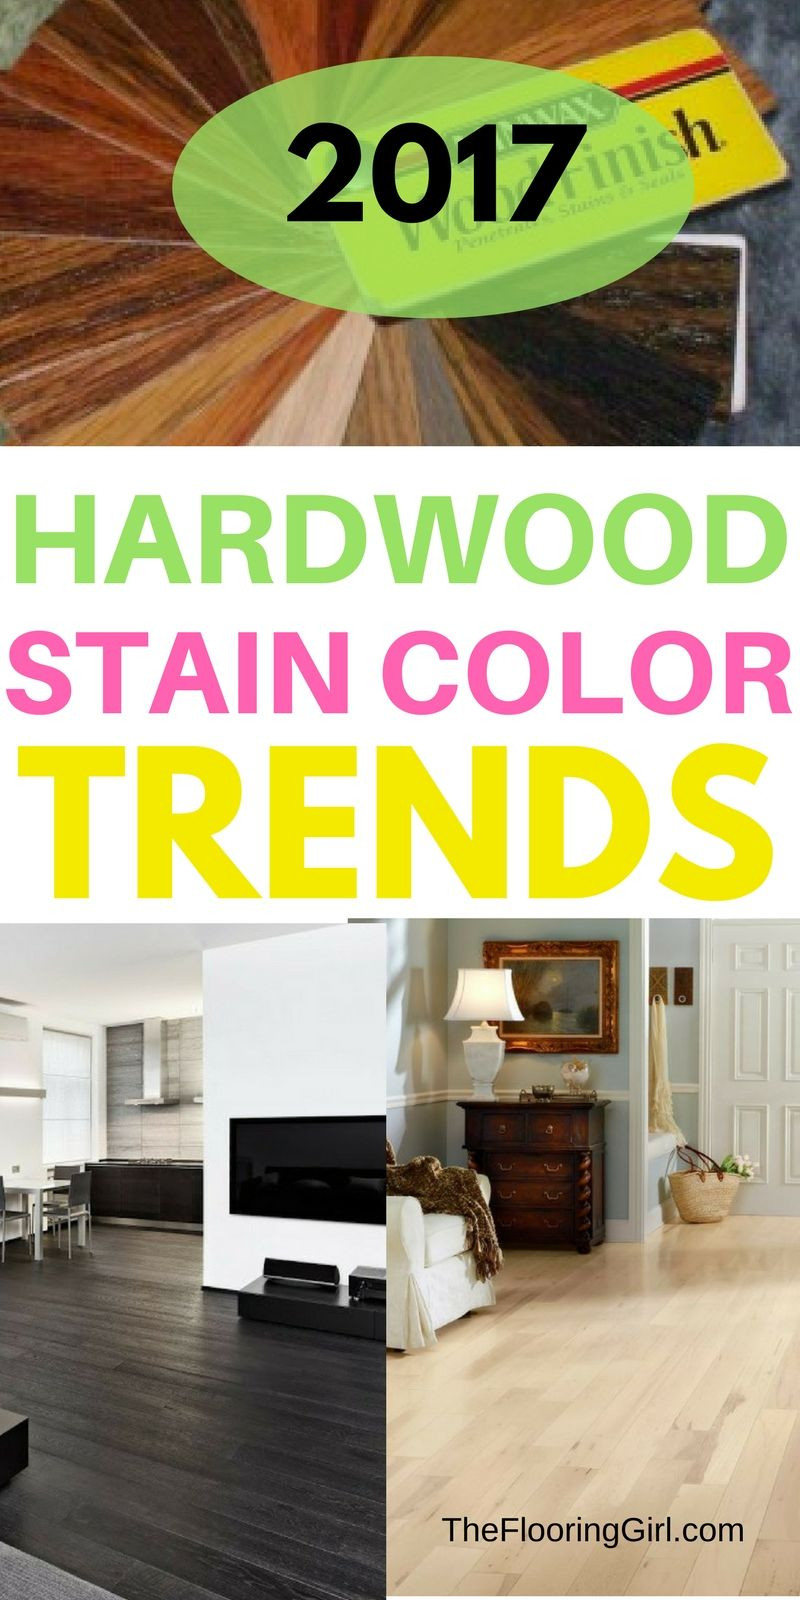 price per sq ft to refinish hardwood floors of hardwood flooring stain color trends 2018 more from the flooring within hardwood flooring stain color trends for 2017 hardwood colors that are in style theflooringgirl com